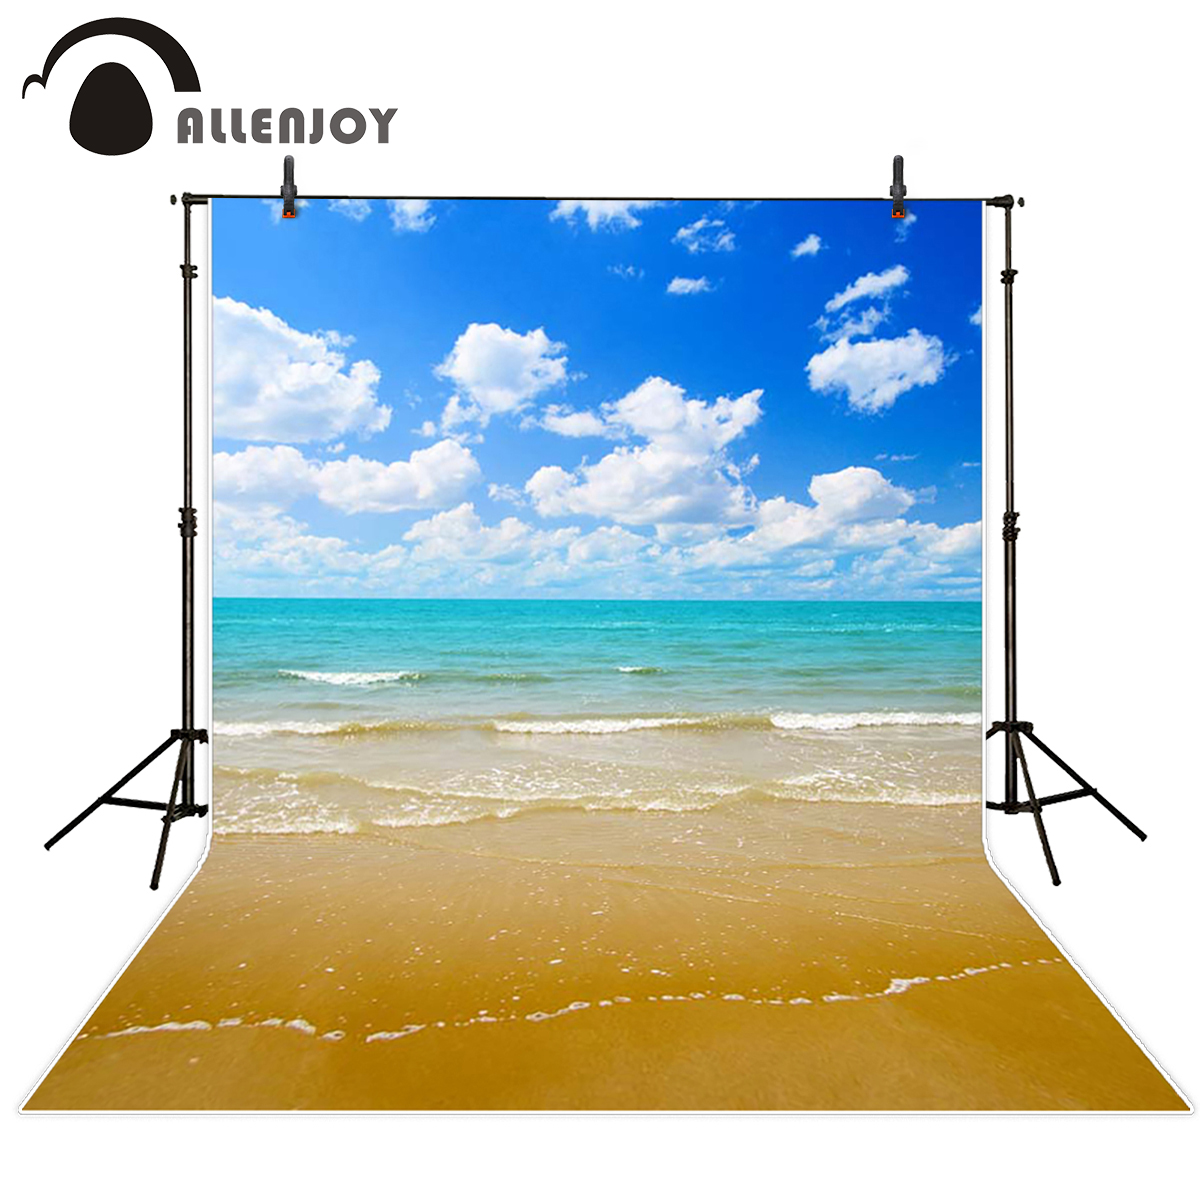 Allenjoy scenic Photo background Sea beach cloudy seaside photography scenarios backgrounds for photo studio background vinyl kate backdrop for photography beach ocean wedding series background photo studio seaside scenic backdrops